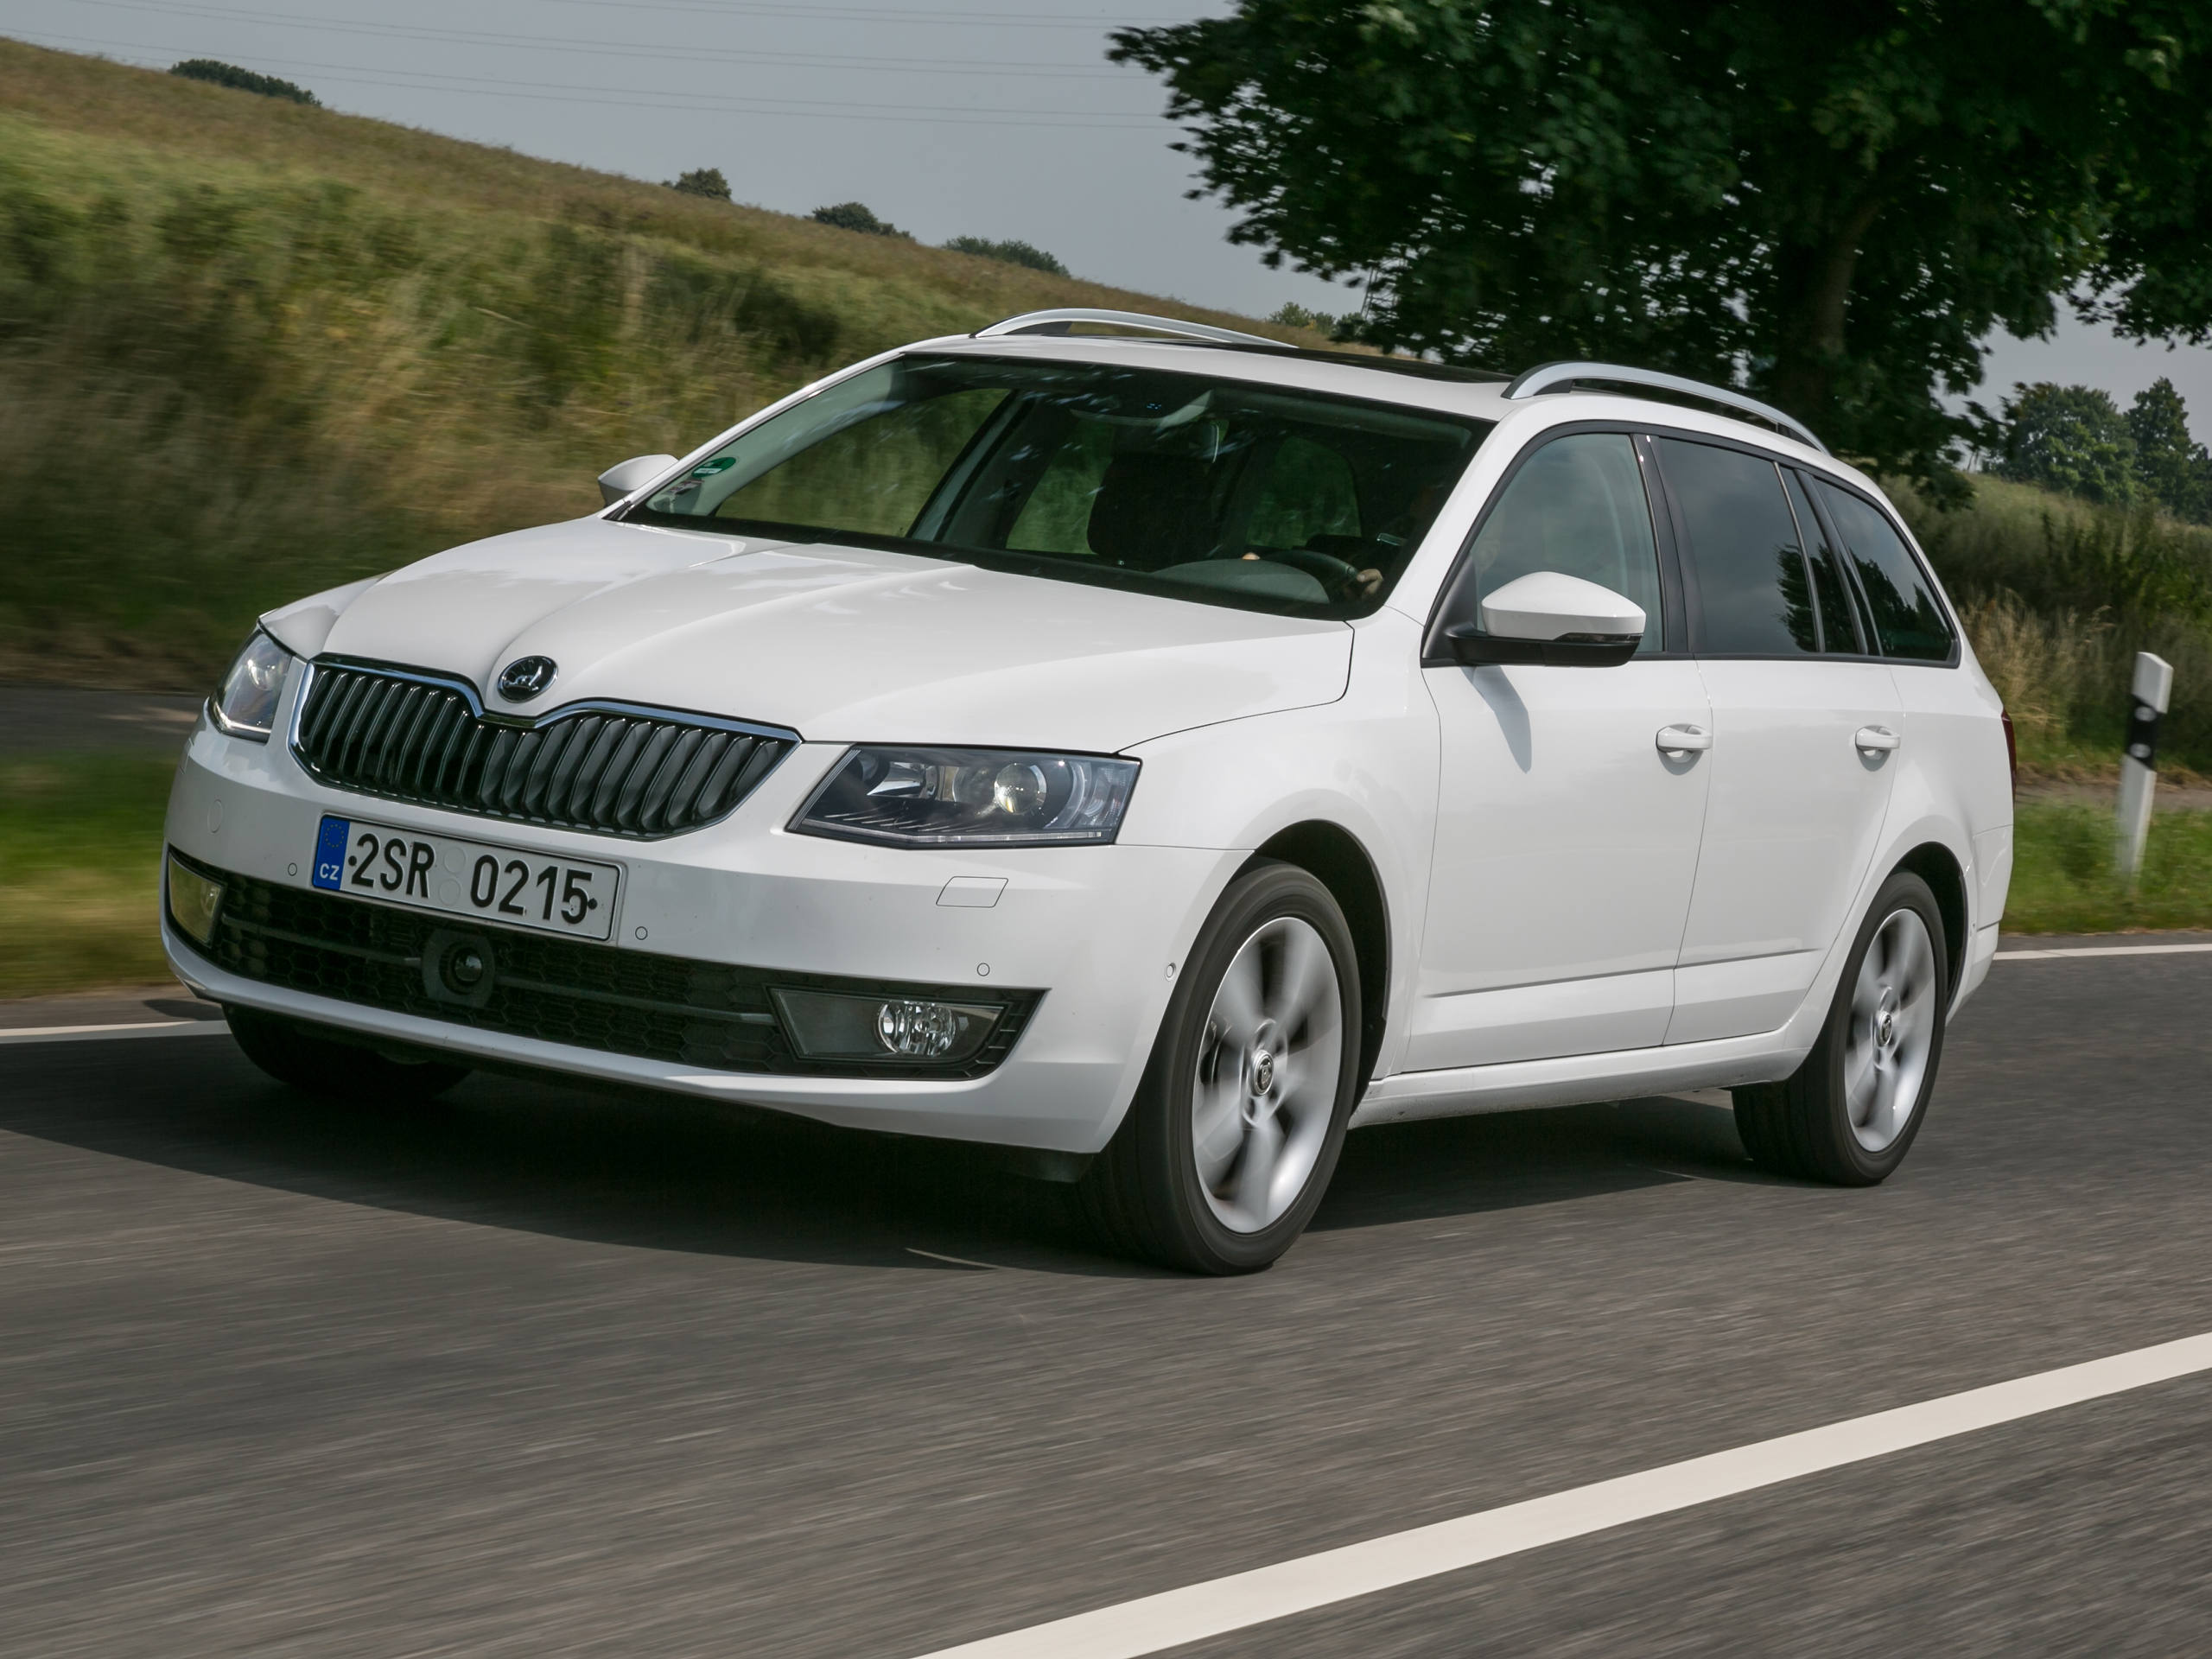 test skoda octavia combi 2 0 tdi 2013 bilder und. Black Bedroom Furniture Sets. Home Design Ideas